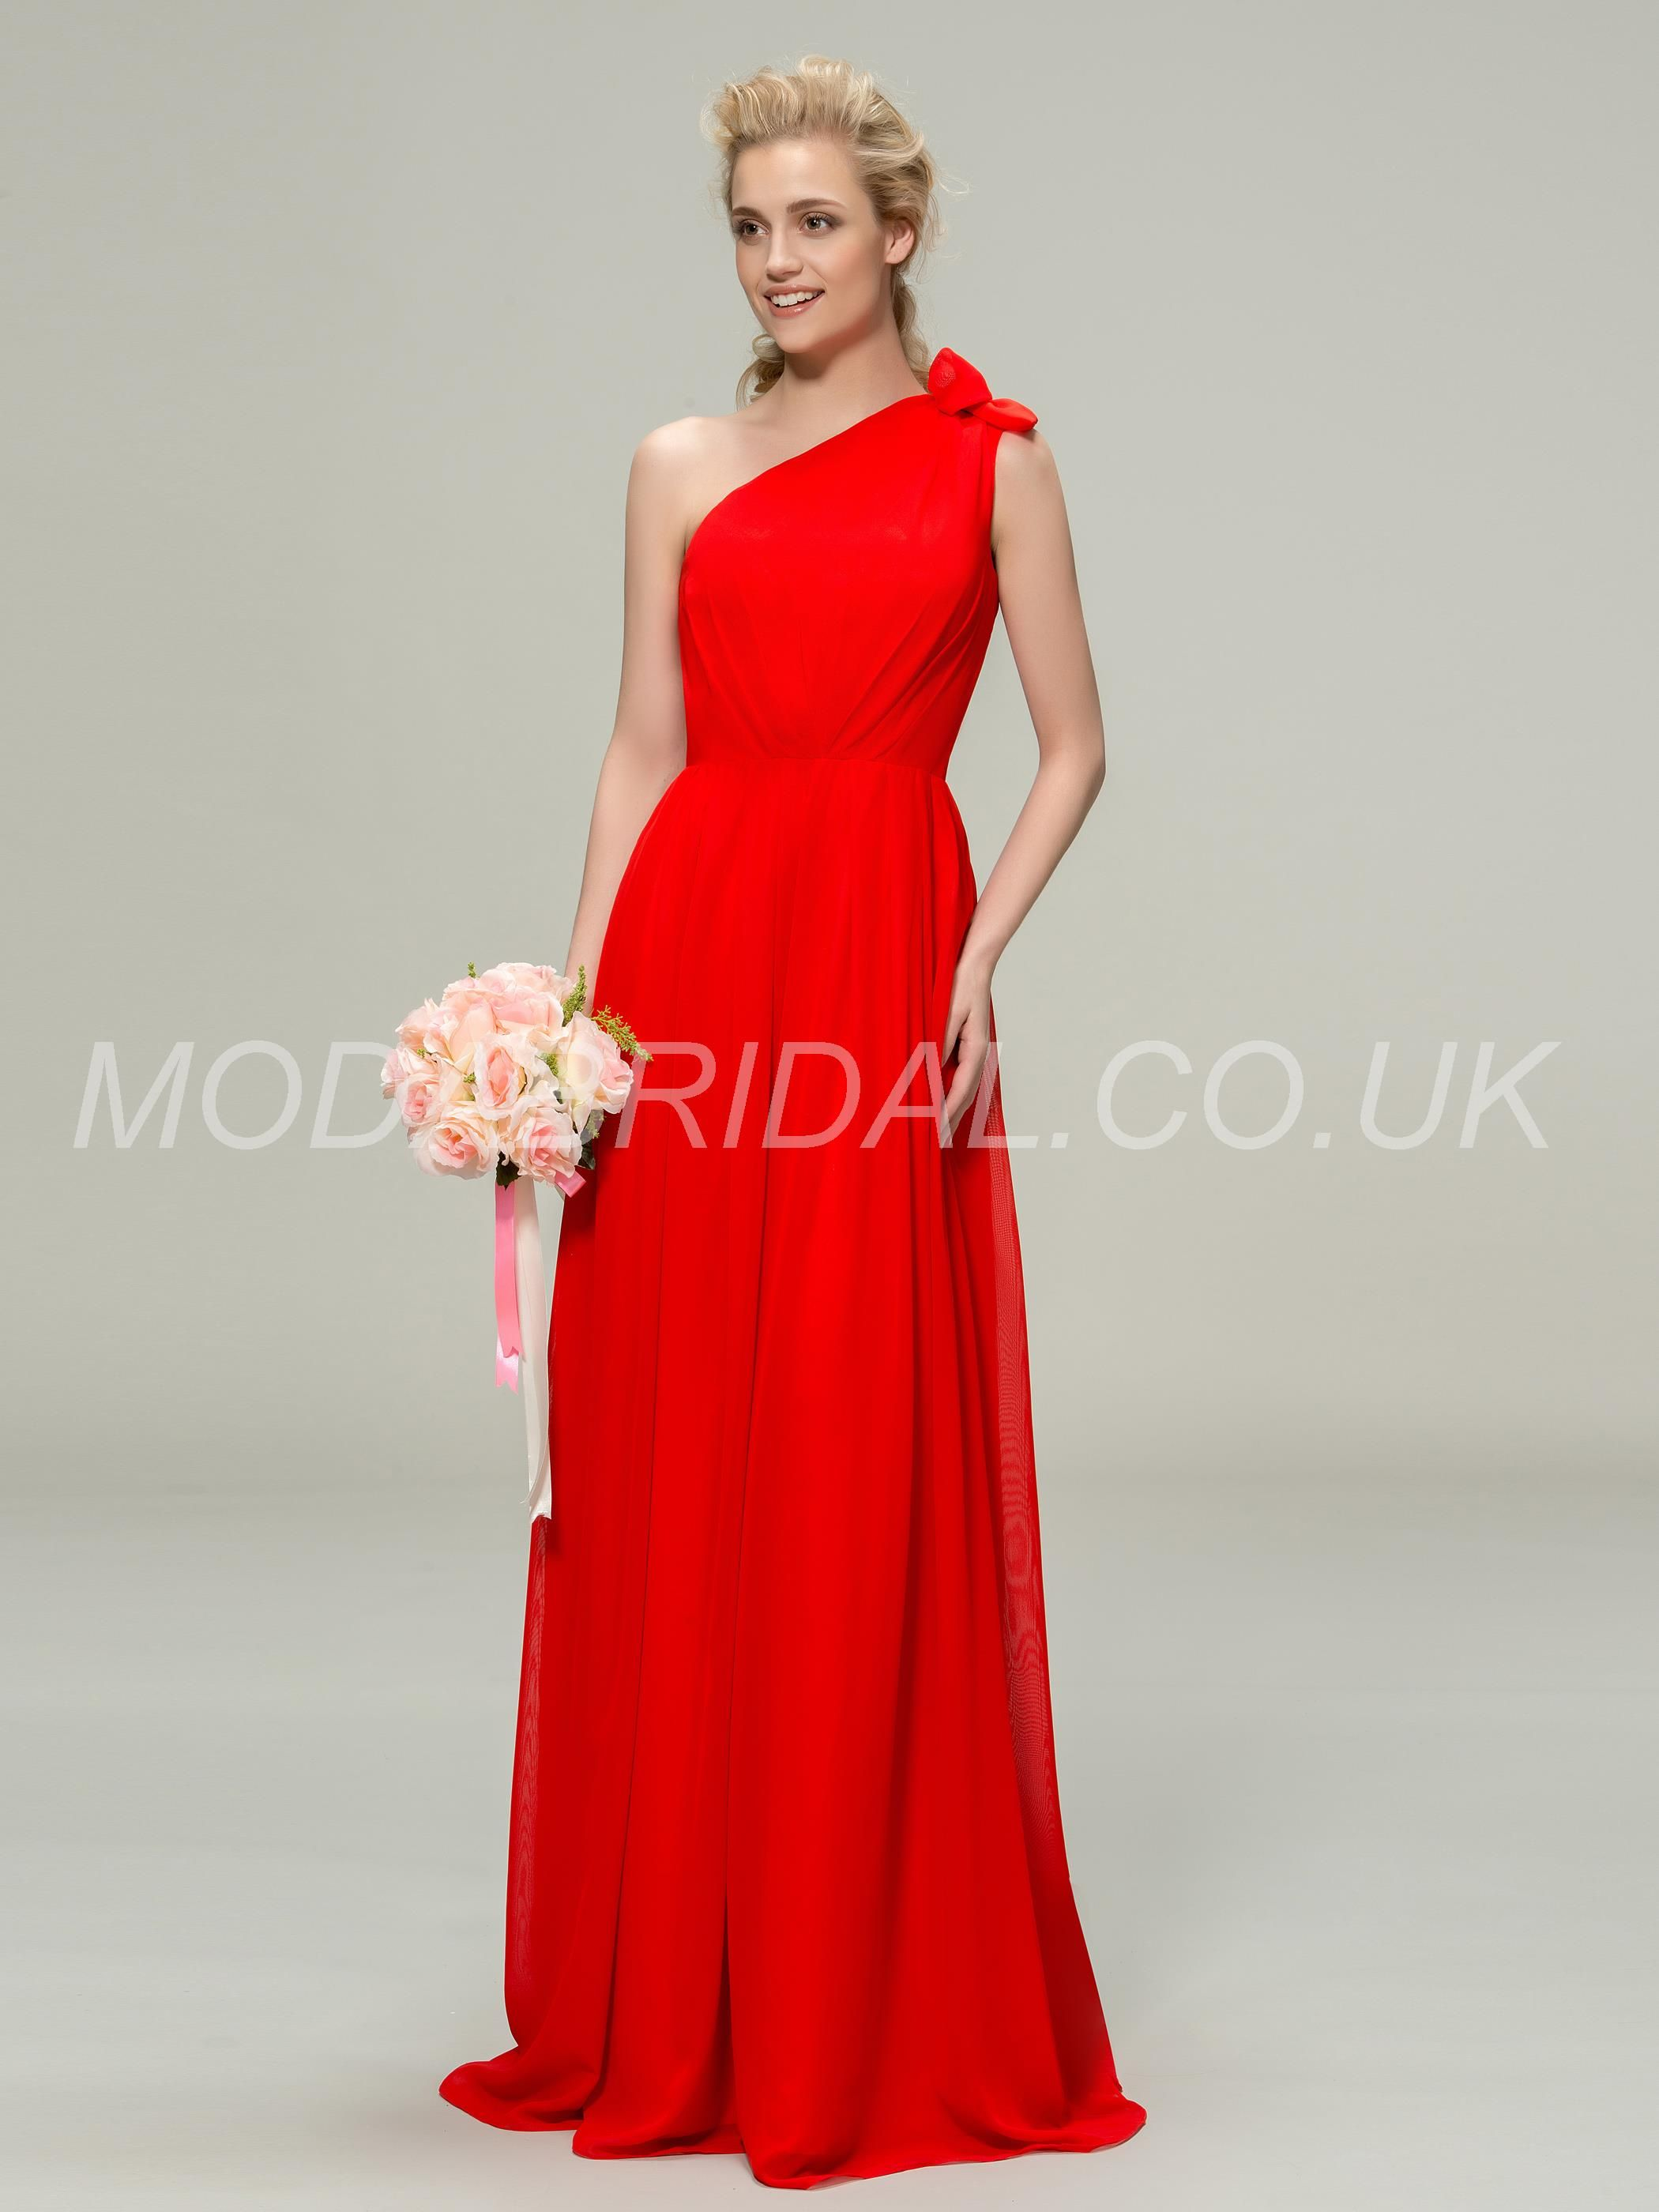 Dress for wedding party in winter  modabridal SUPPLIES UK Style One Shoulder Spring All Sizes